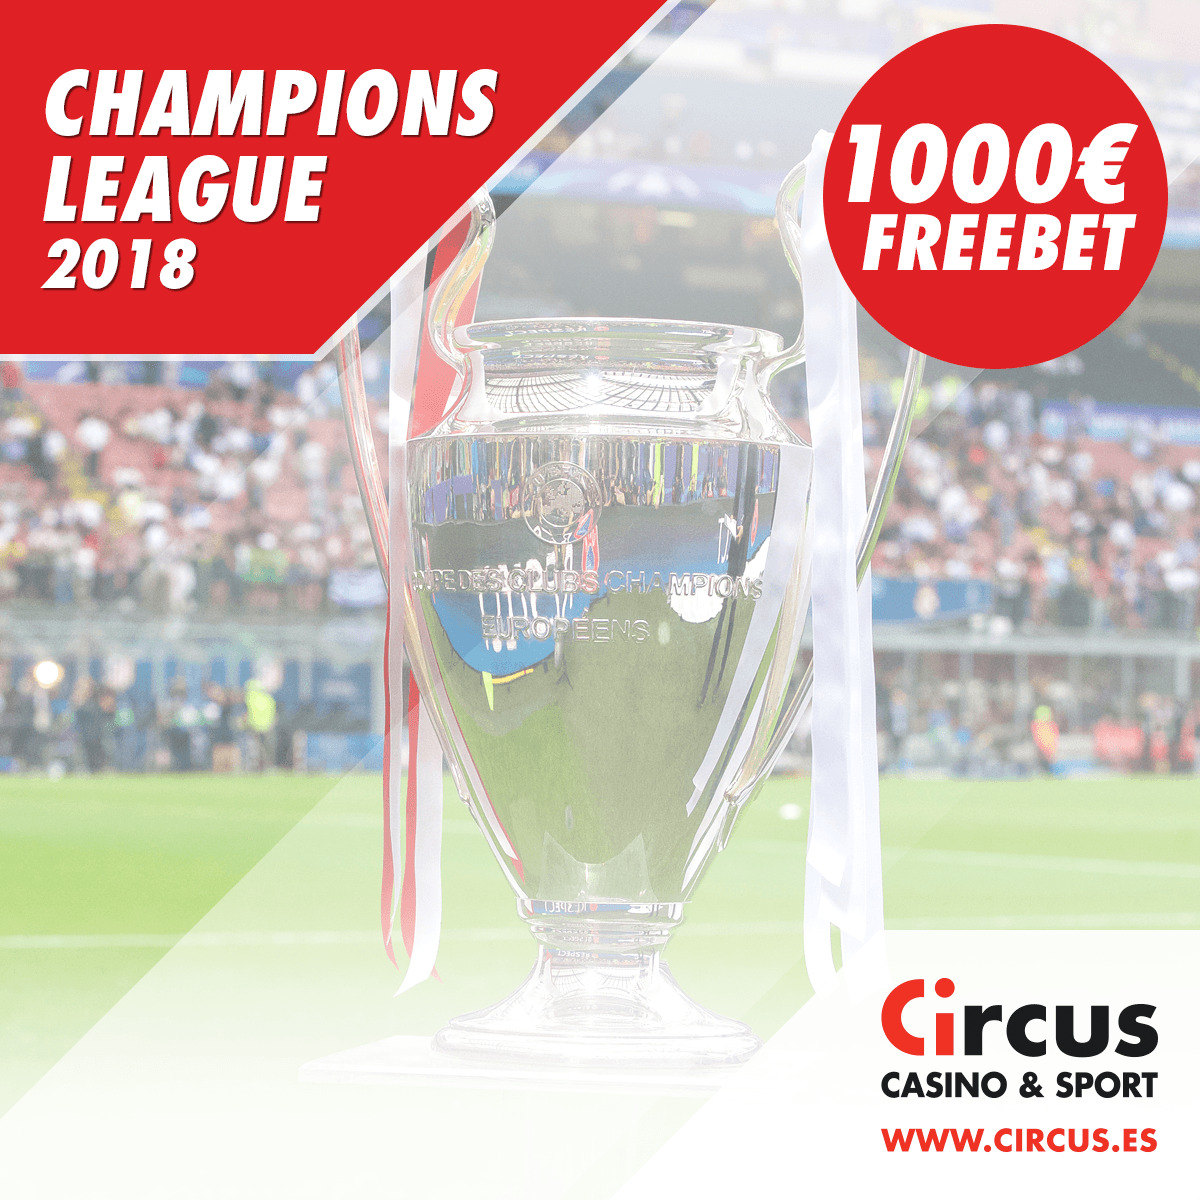 Circus champions league 1000€ freebet